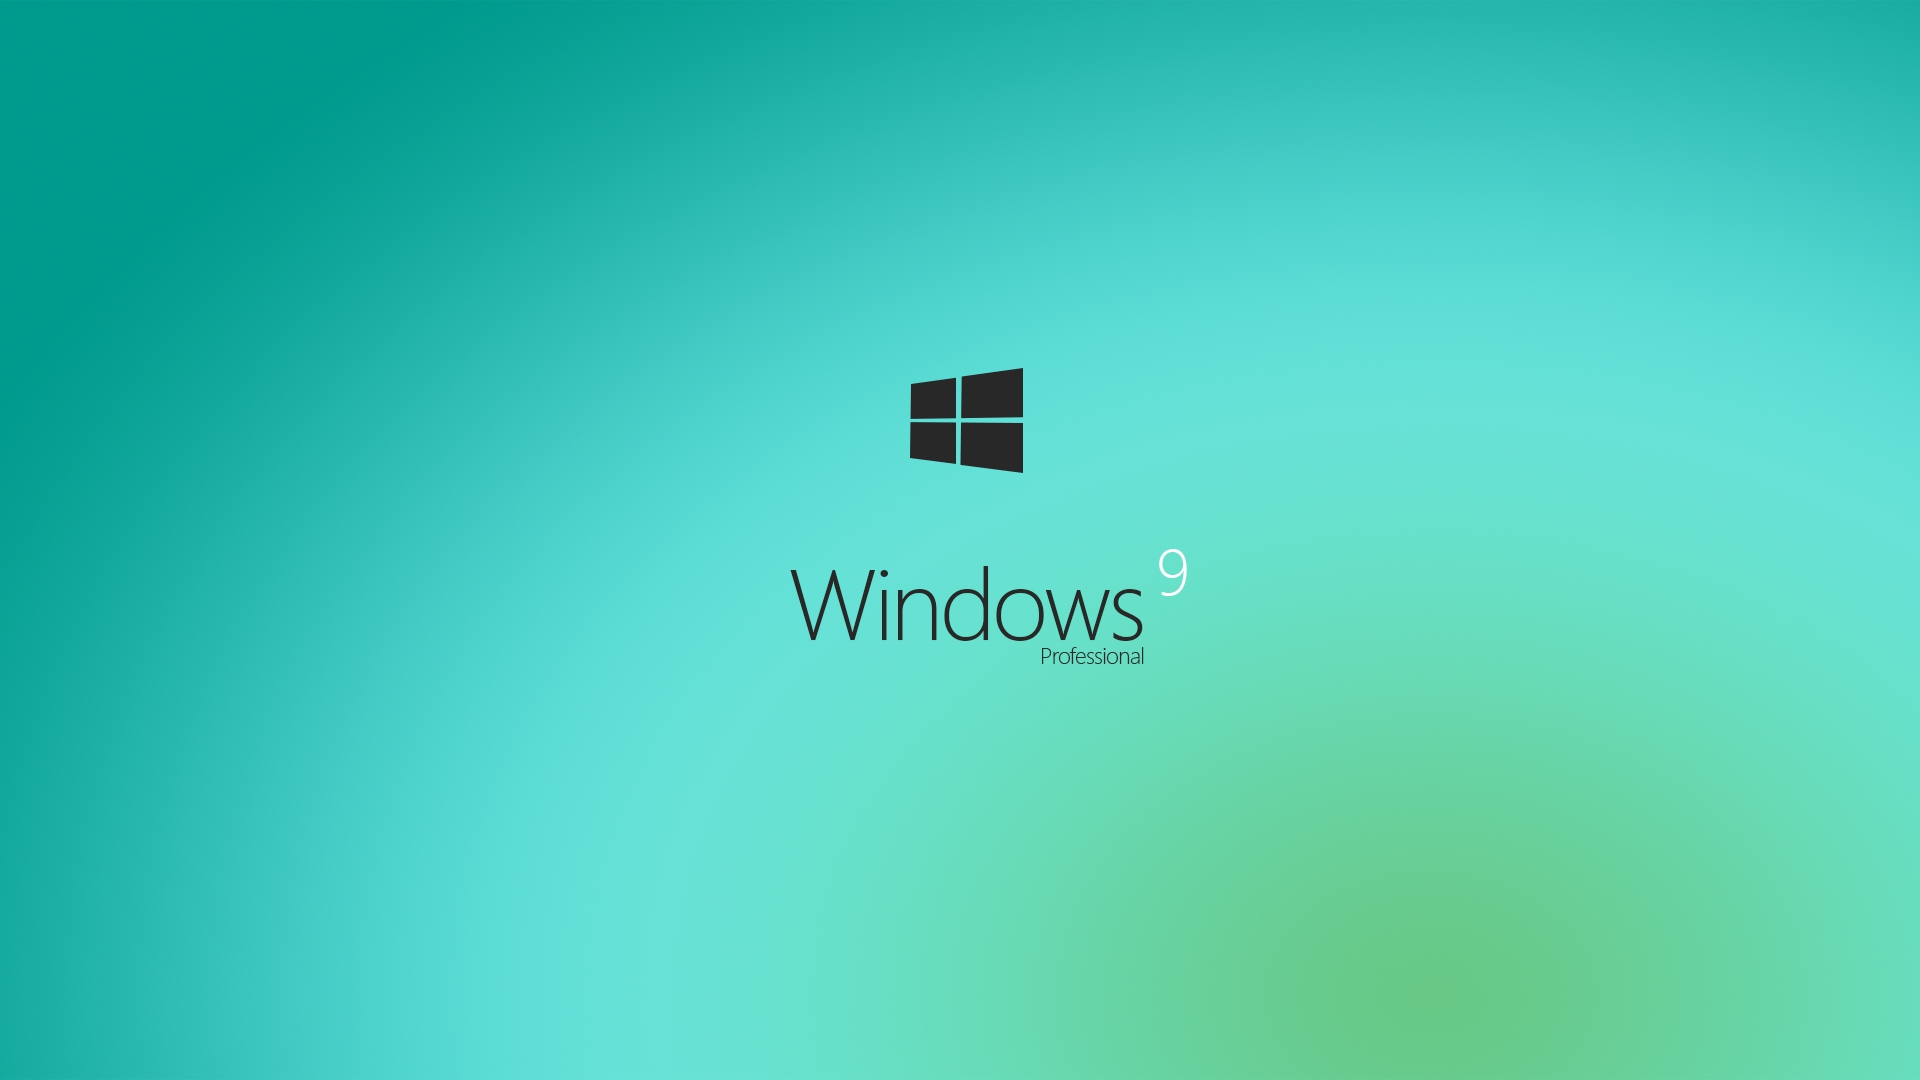 Windows 9 Professional - TecnOdia